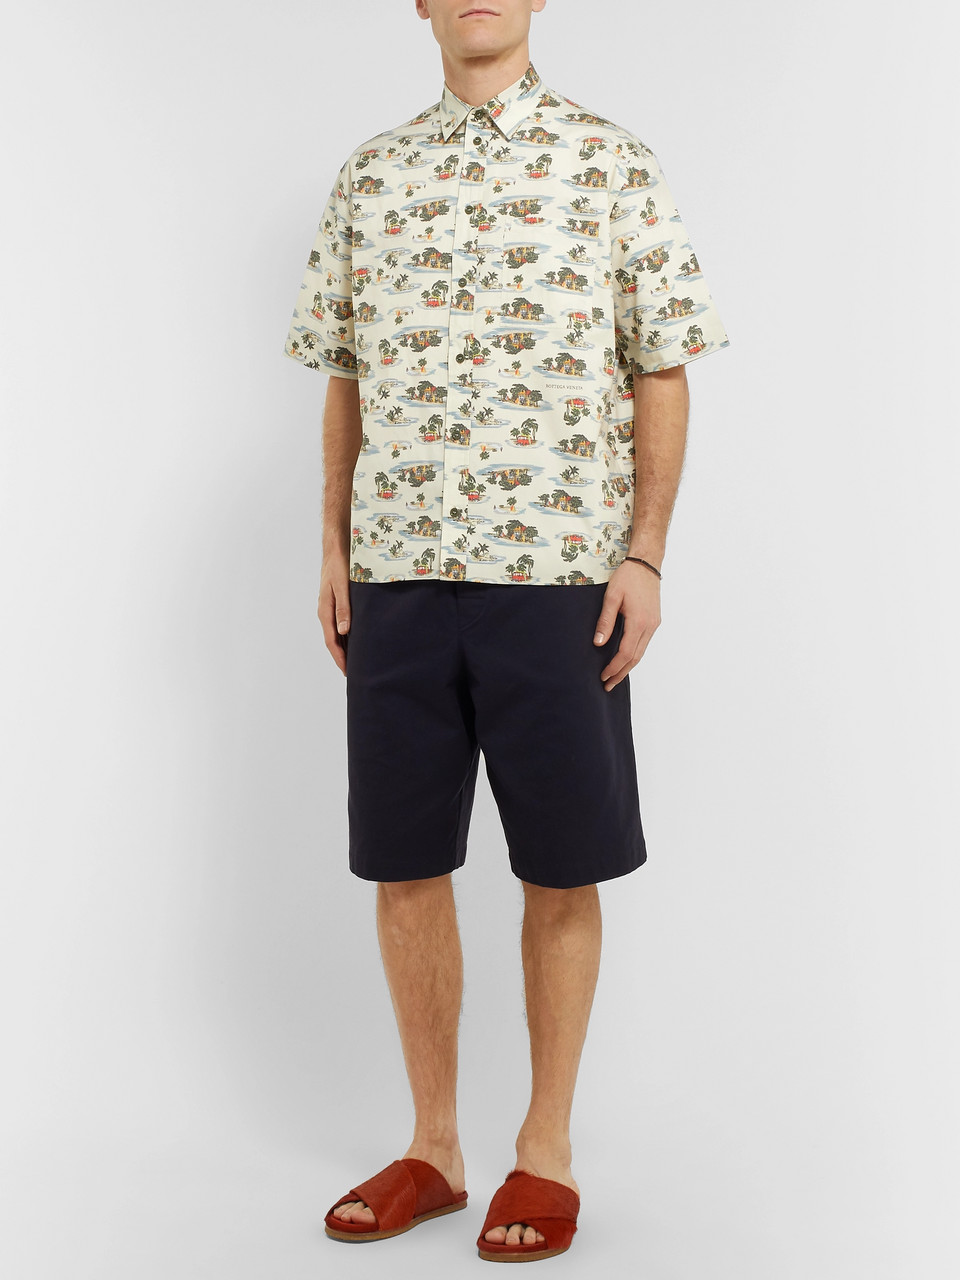 Bottega Veneta Printed Cotton-Poplin Shirt